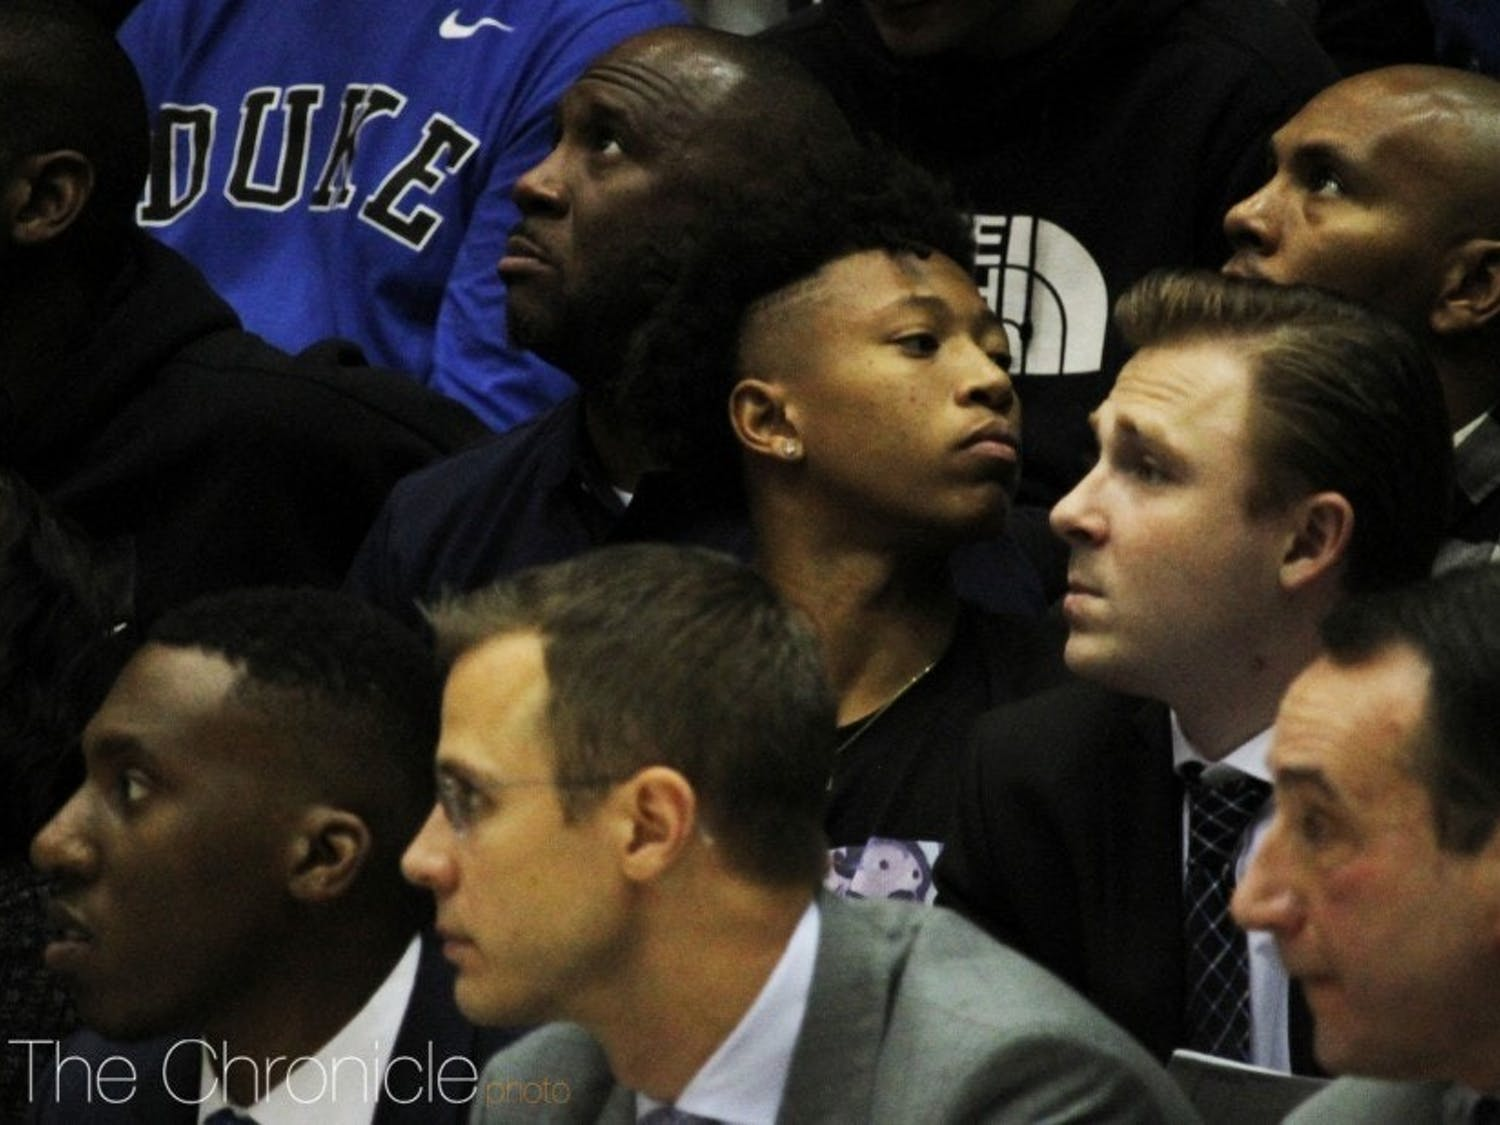 Boogie Ellis has reportedly asked to be released from his letter of intent and will not attend Duke next year.